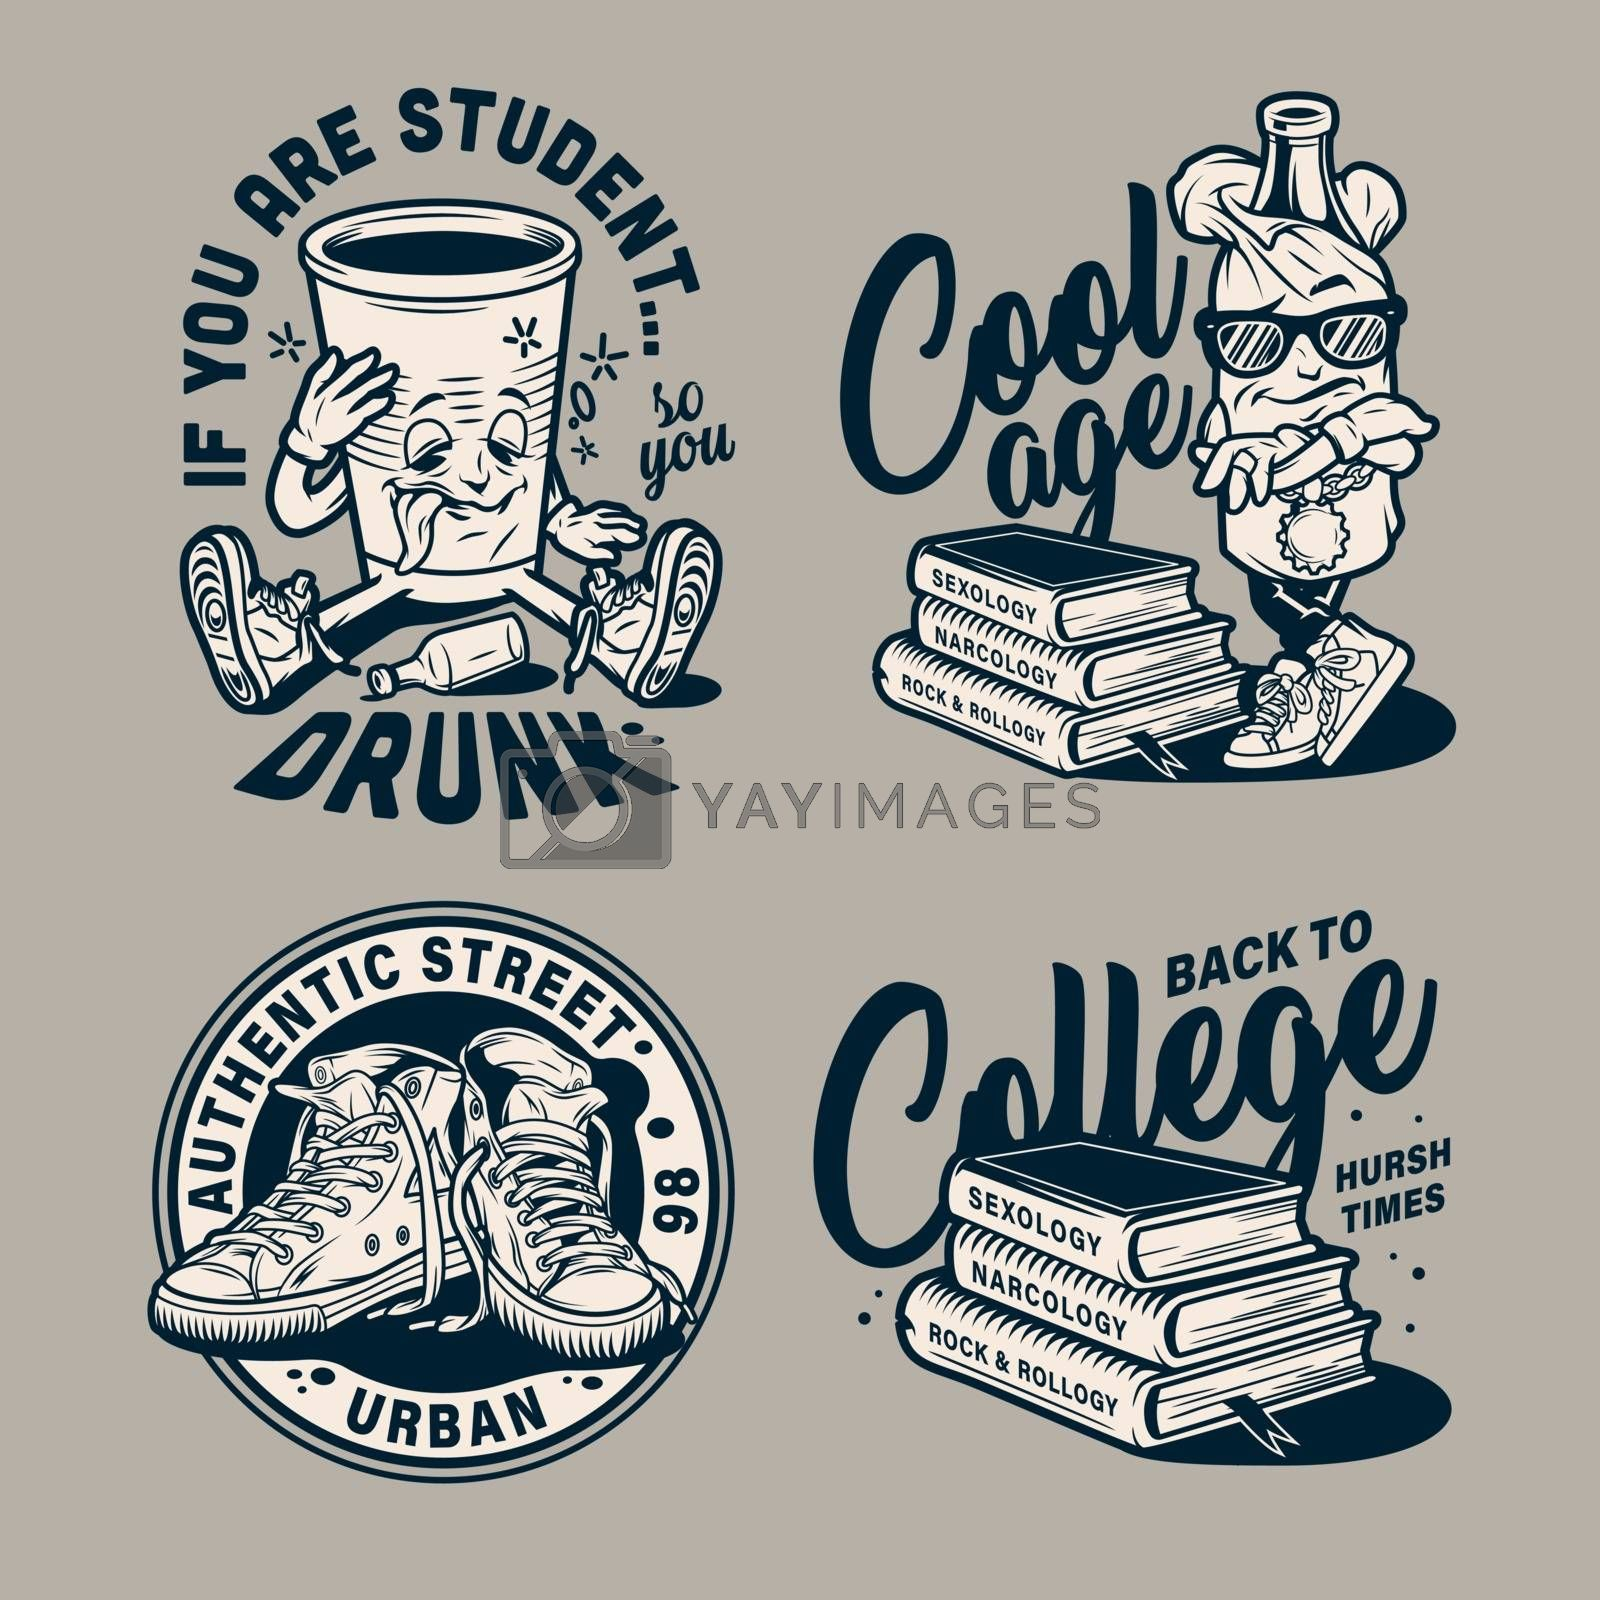 Vintage education monochrome prints with funny college characters sneakers and stack of books isolated vector illustration